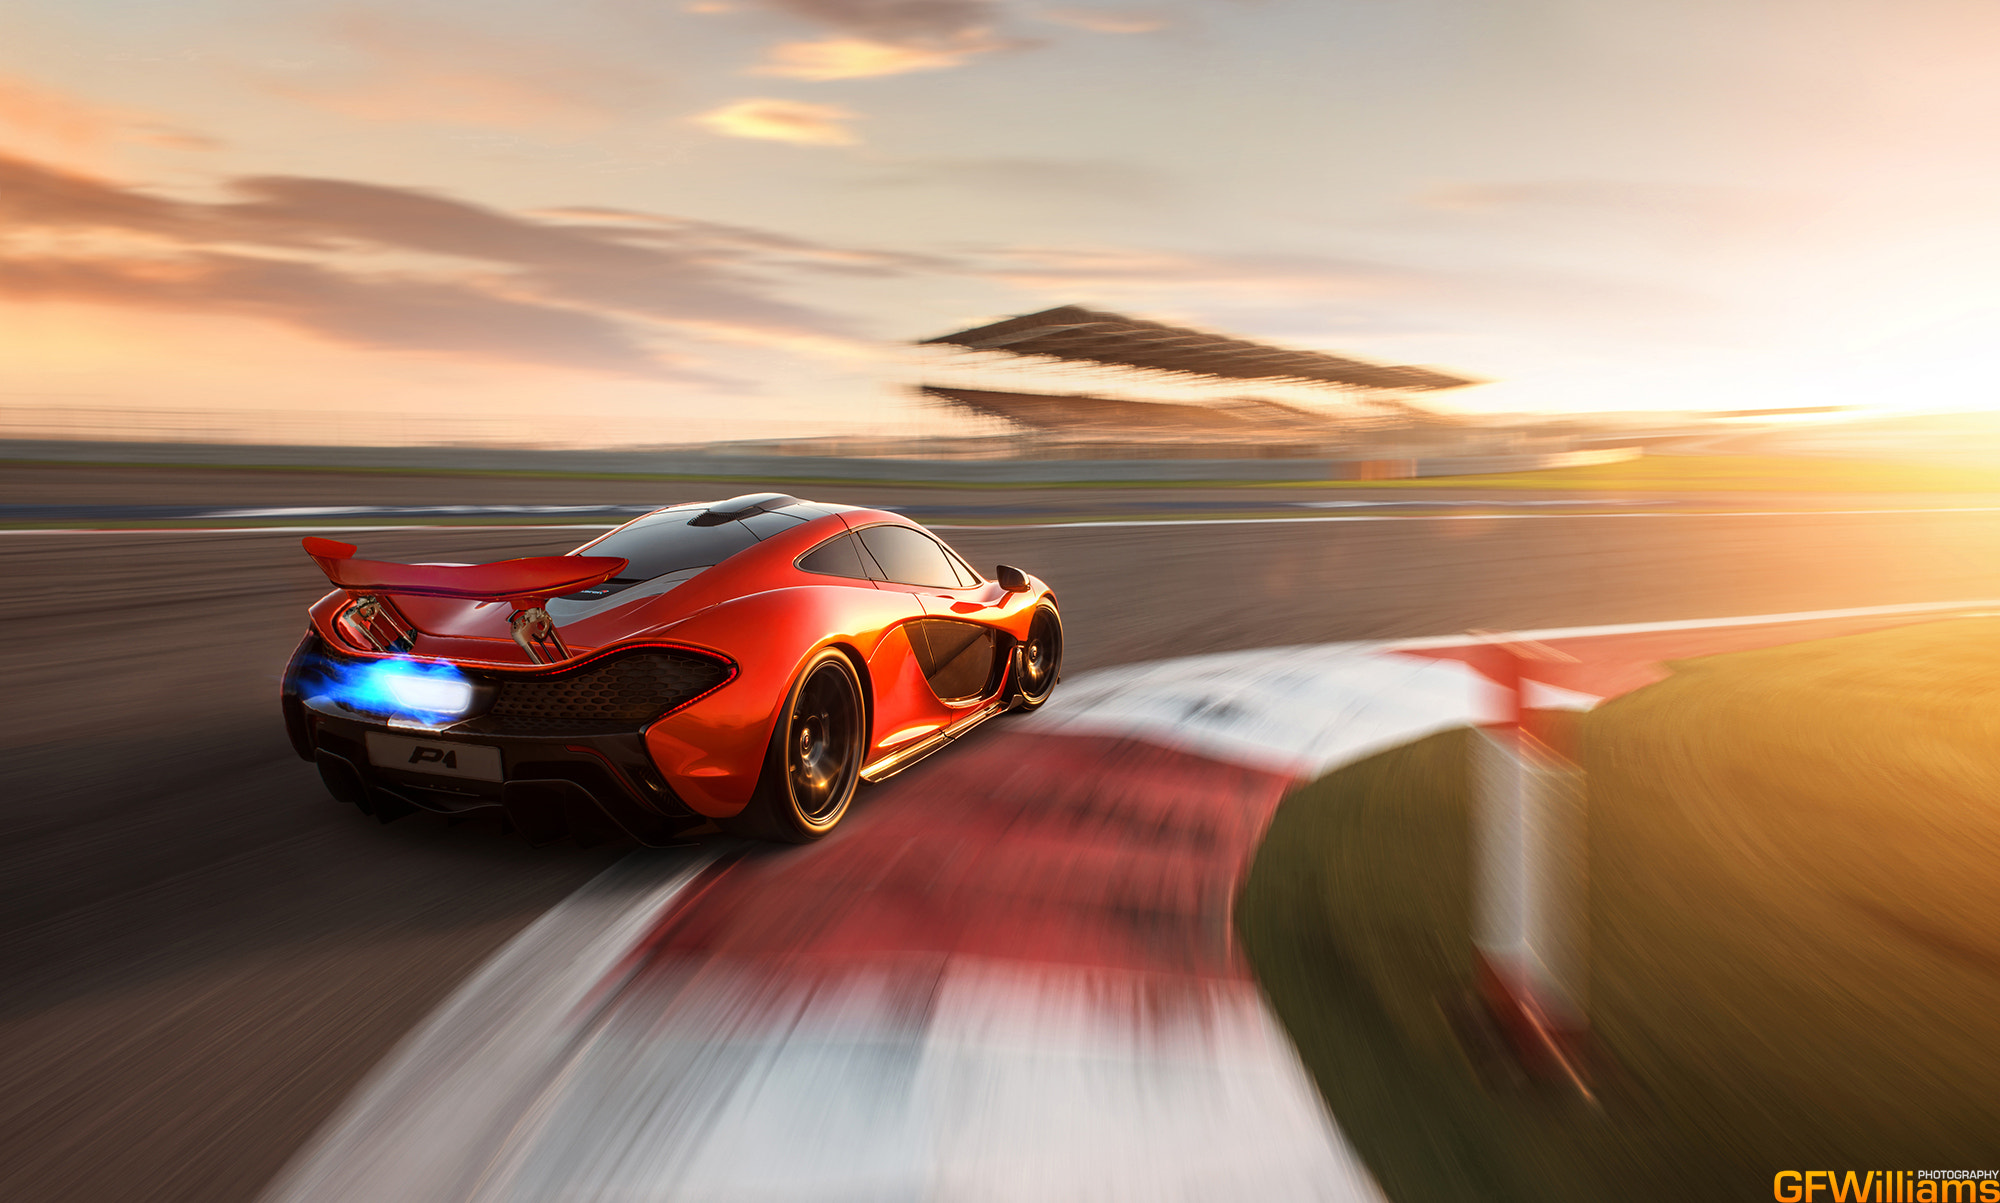 Photograph McLaren P1 by George Williams on 500px